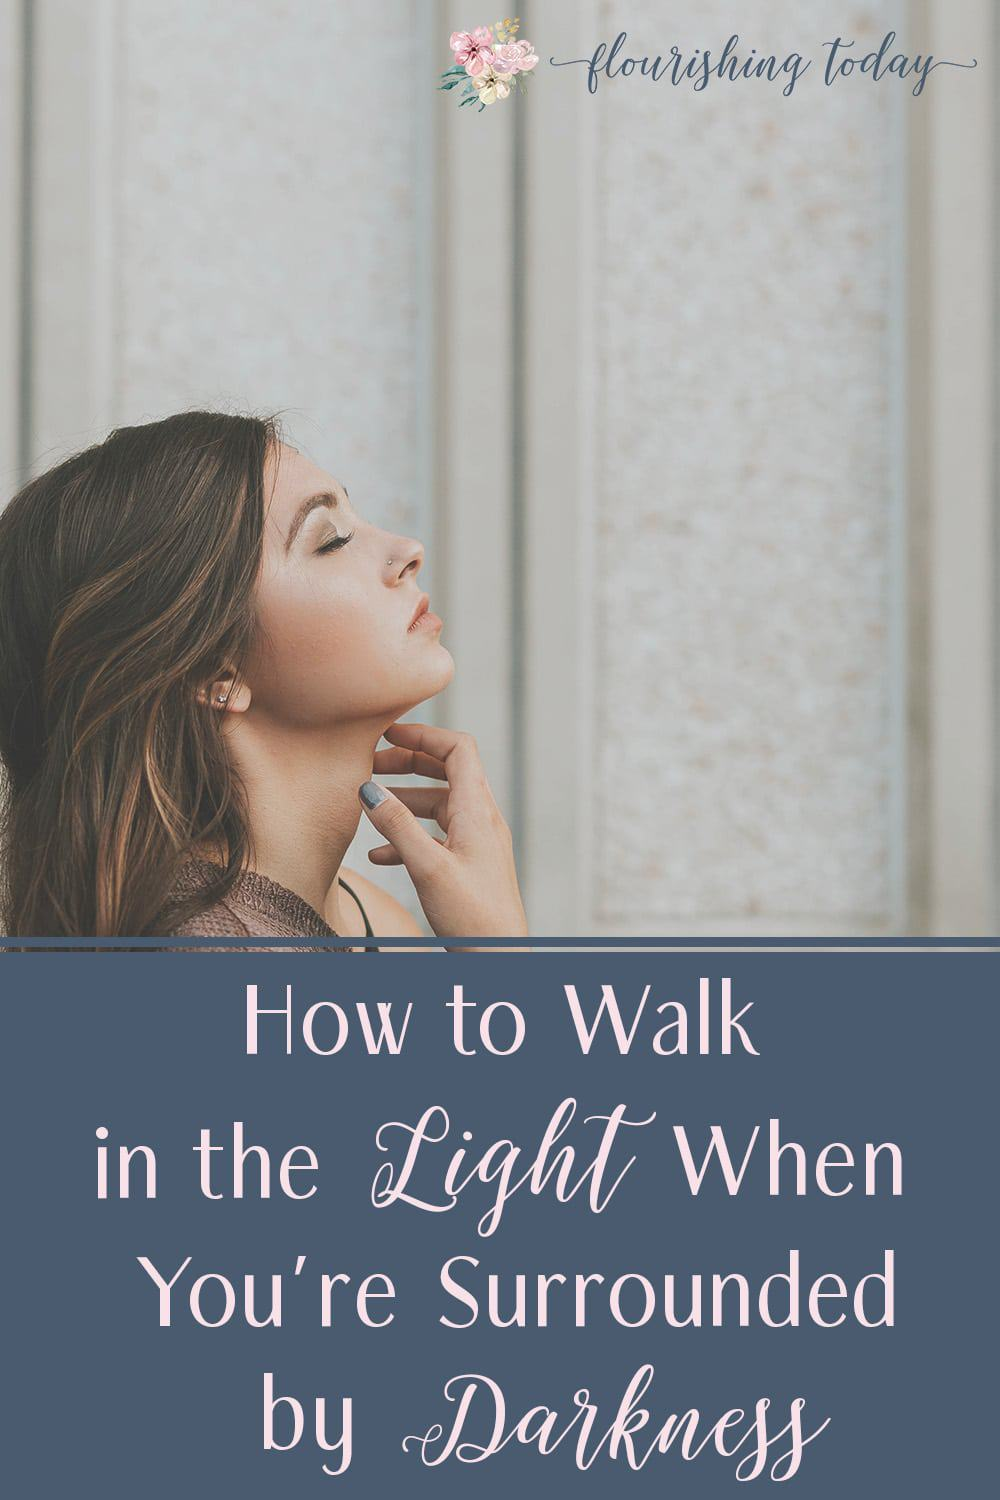 Are you experiencing a difficult season right now? When facing adversity, it can be difficult to see how you can walk in the light. Here are a few tips to help! #overcome #walkinthelight #healing #breakthrough